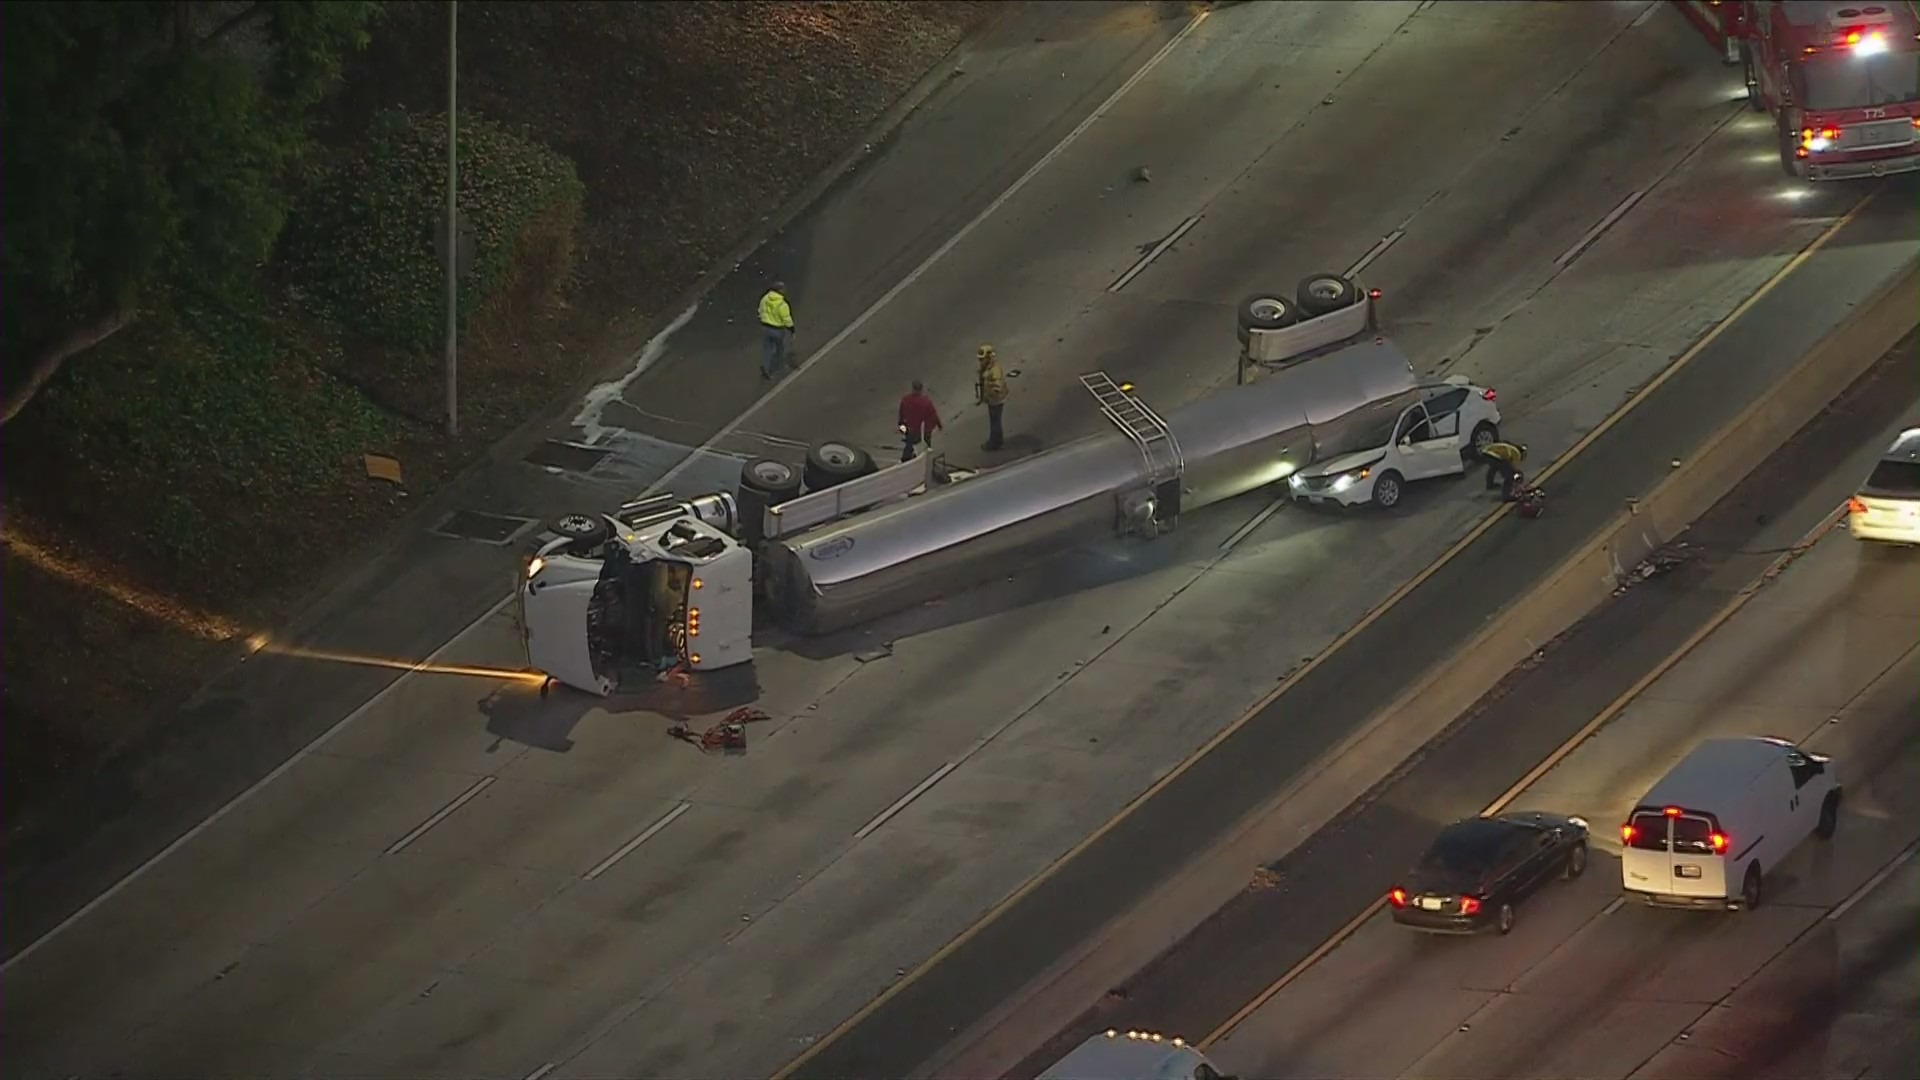 Emergency crews respond to an overturned truck on the 5 Freeway in Lincoln Heights on Nov. 24, 2020. (KTLA)